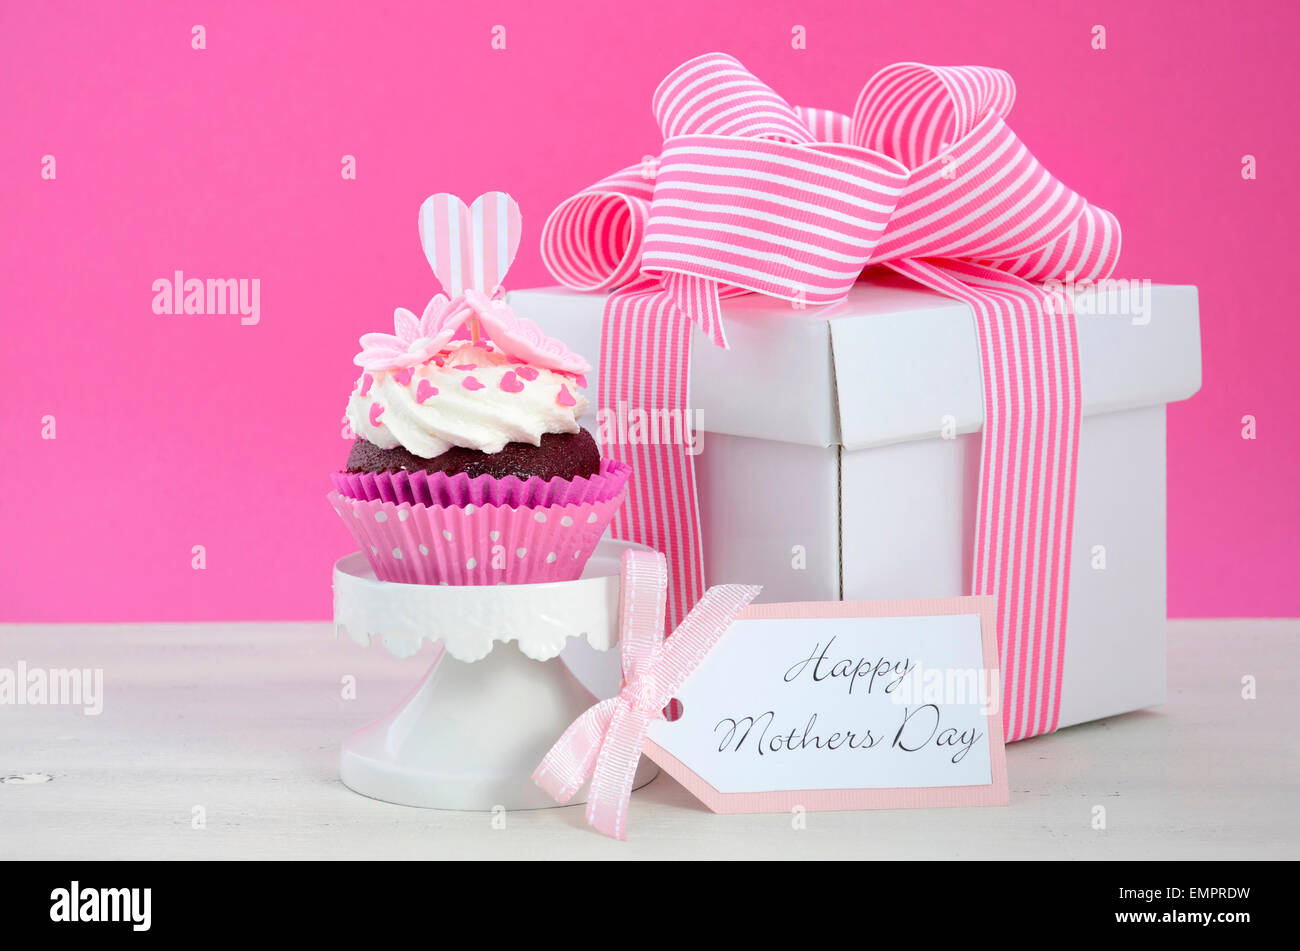 Happy Mothers Day pink and white cupcakes on retro style cake stands ...